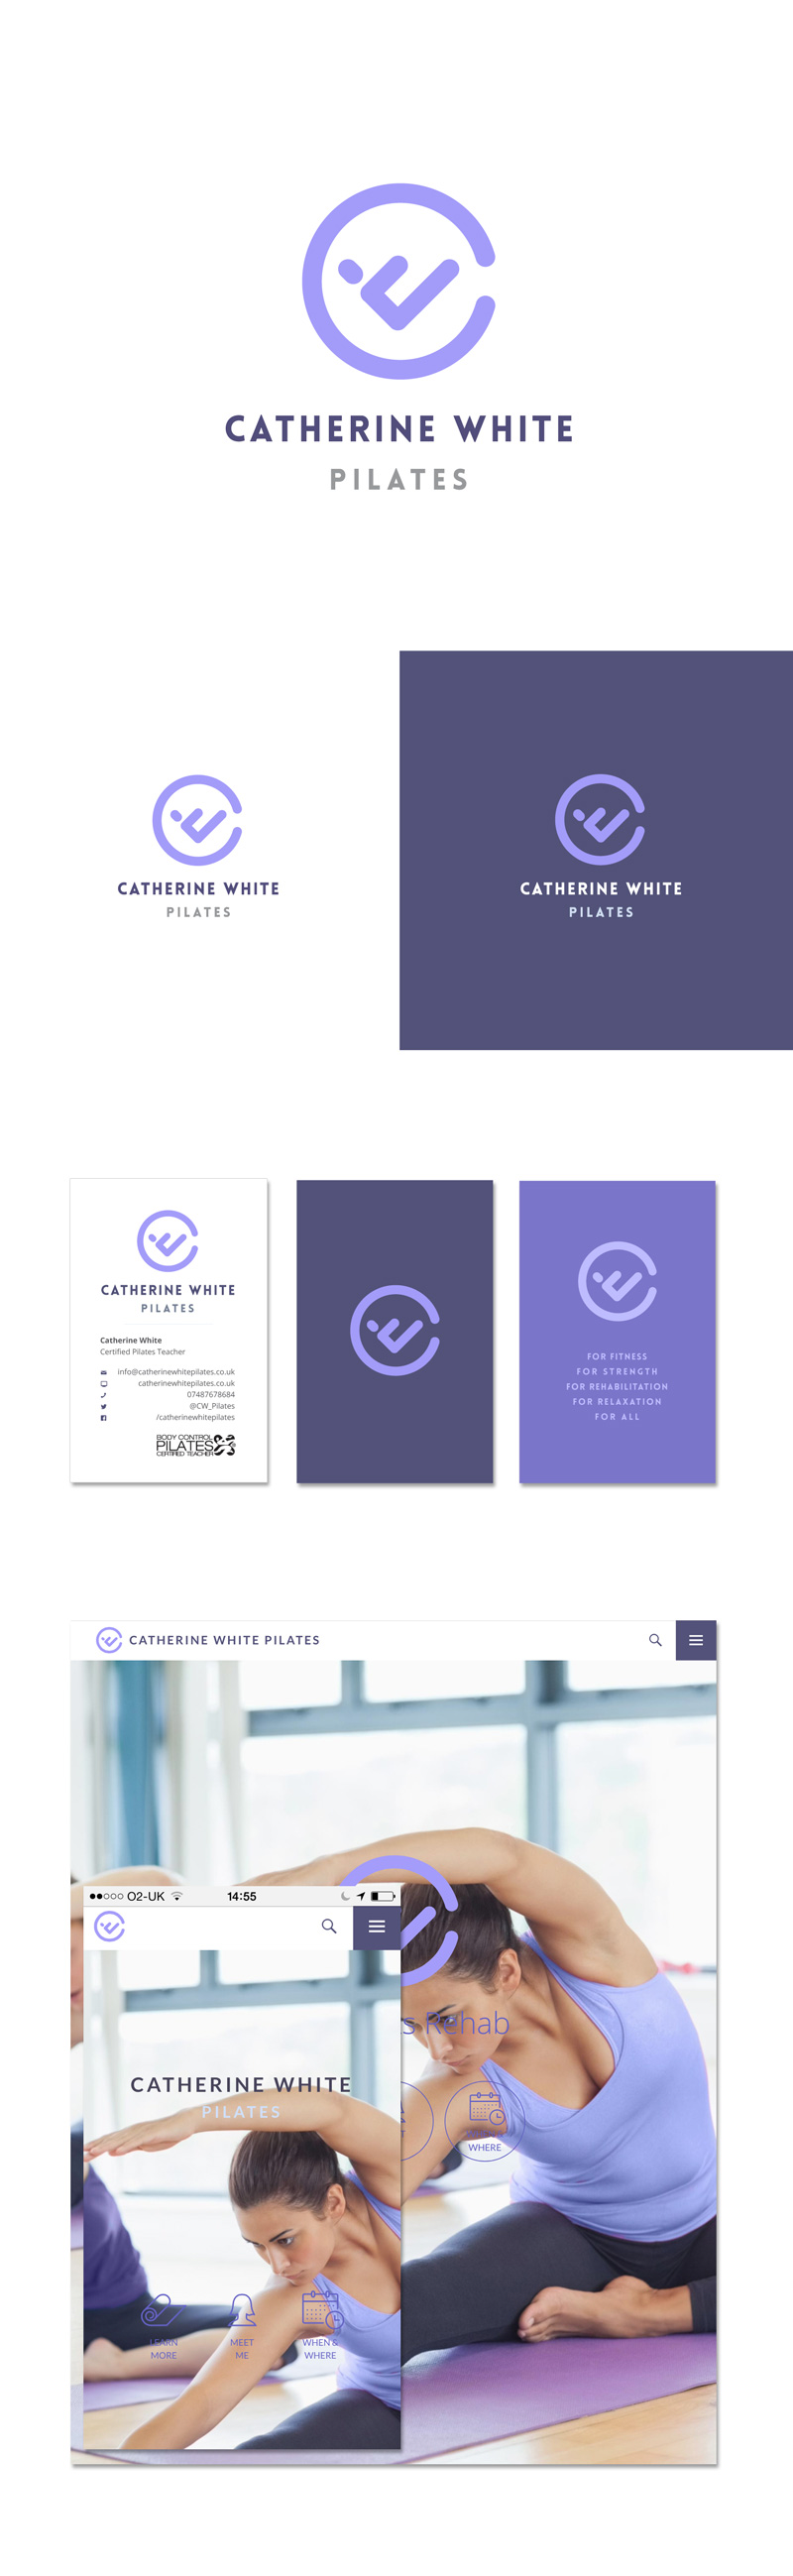 Pilates brand identity design pilates with logo, business cards and website